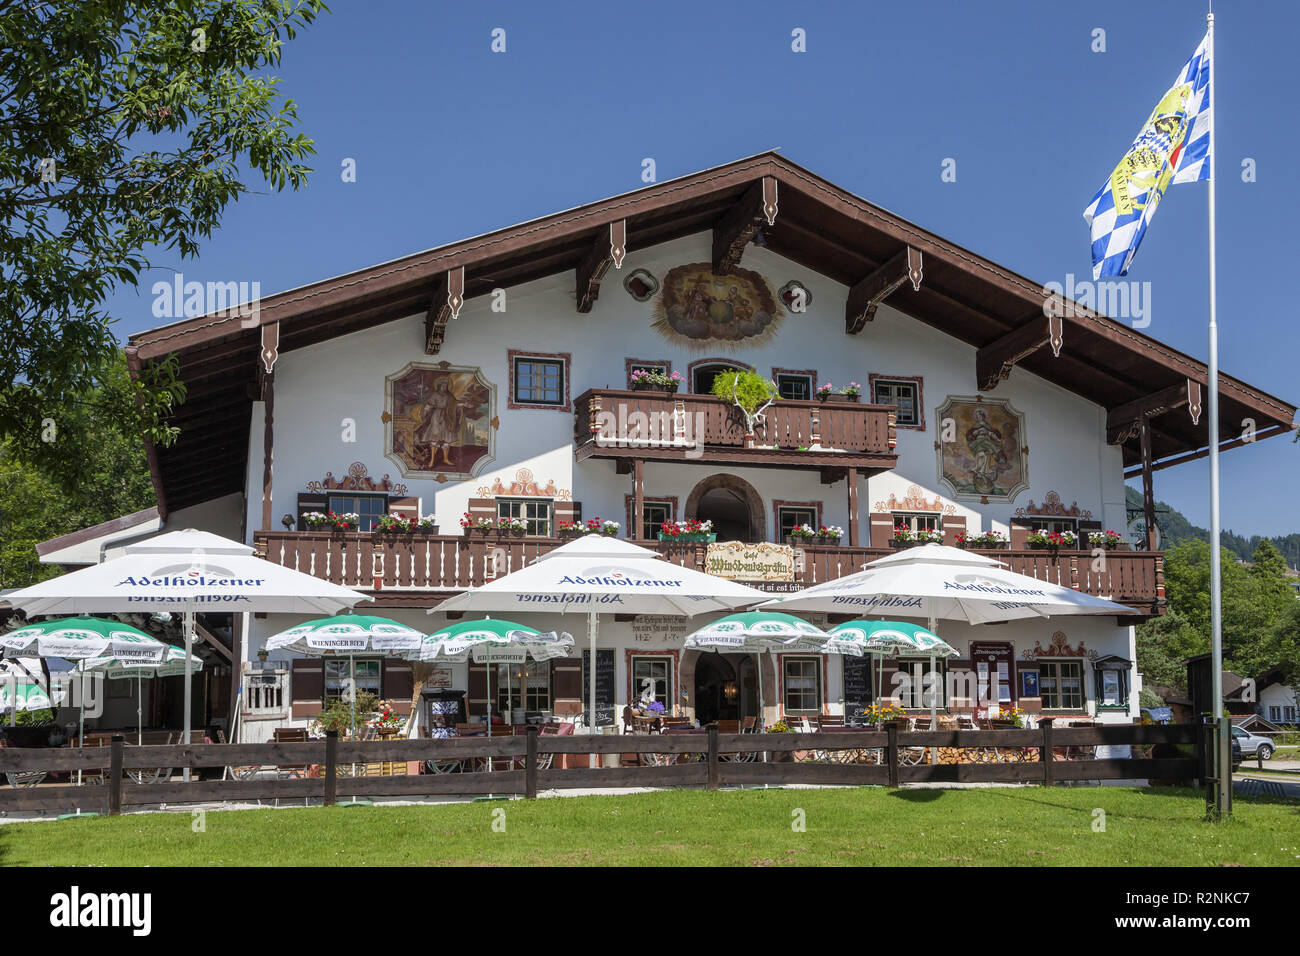 Haubarg cafe dating germany